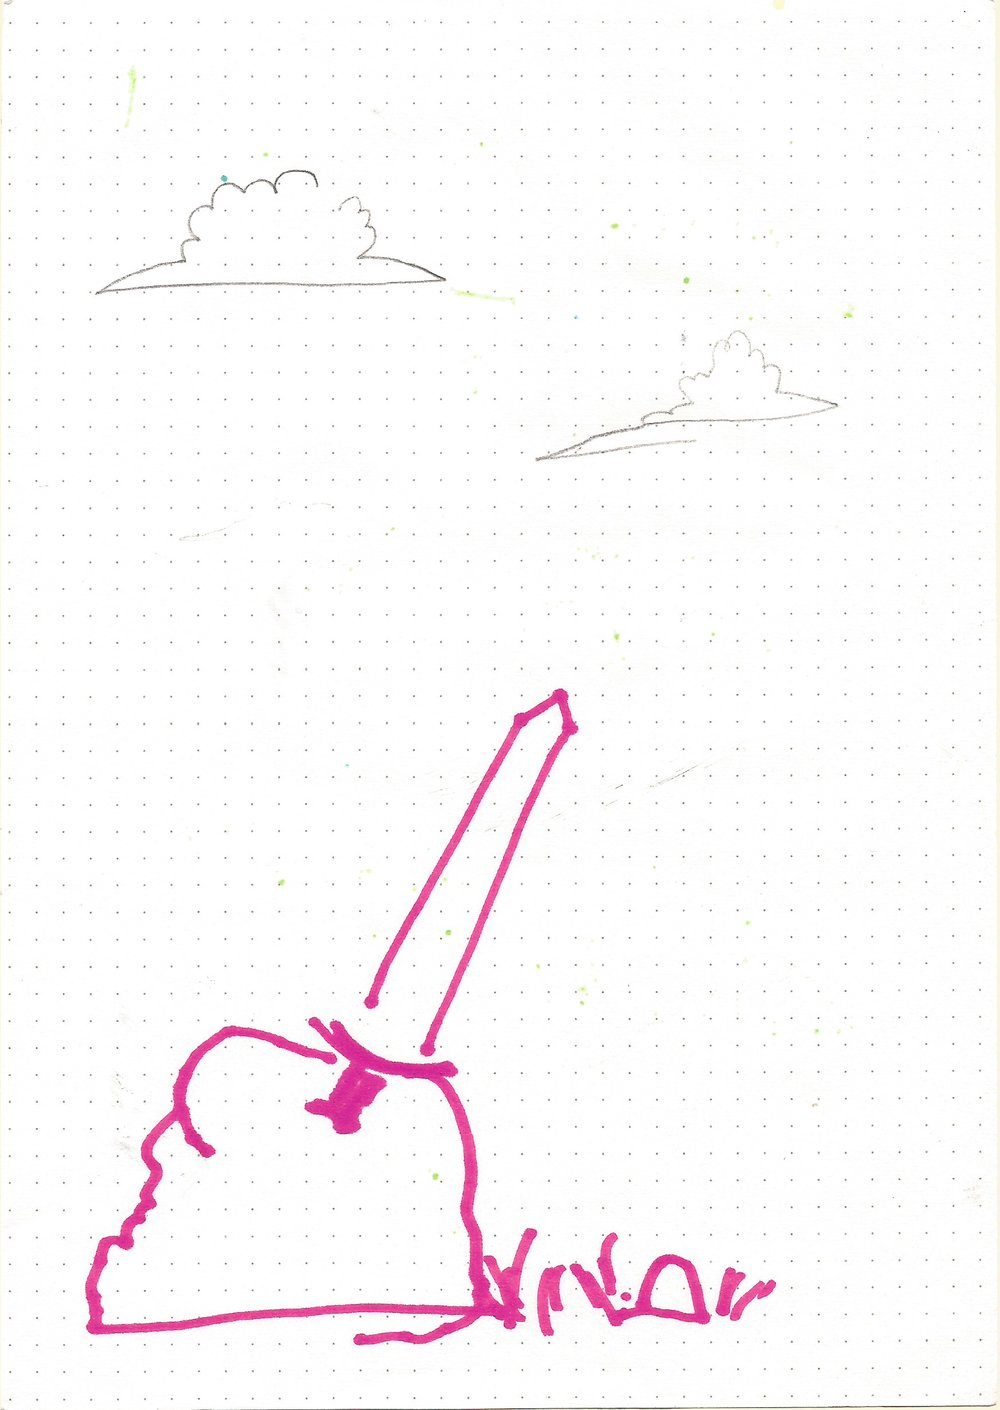 The Sword on the Stone   From the series  Punchis Punchis  Marker on Paper 15 X 20 cms 2016